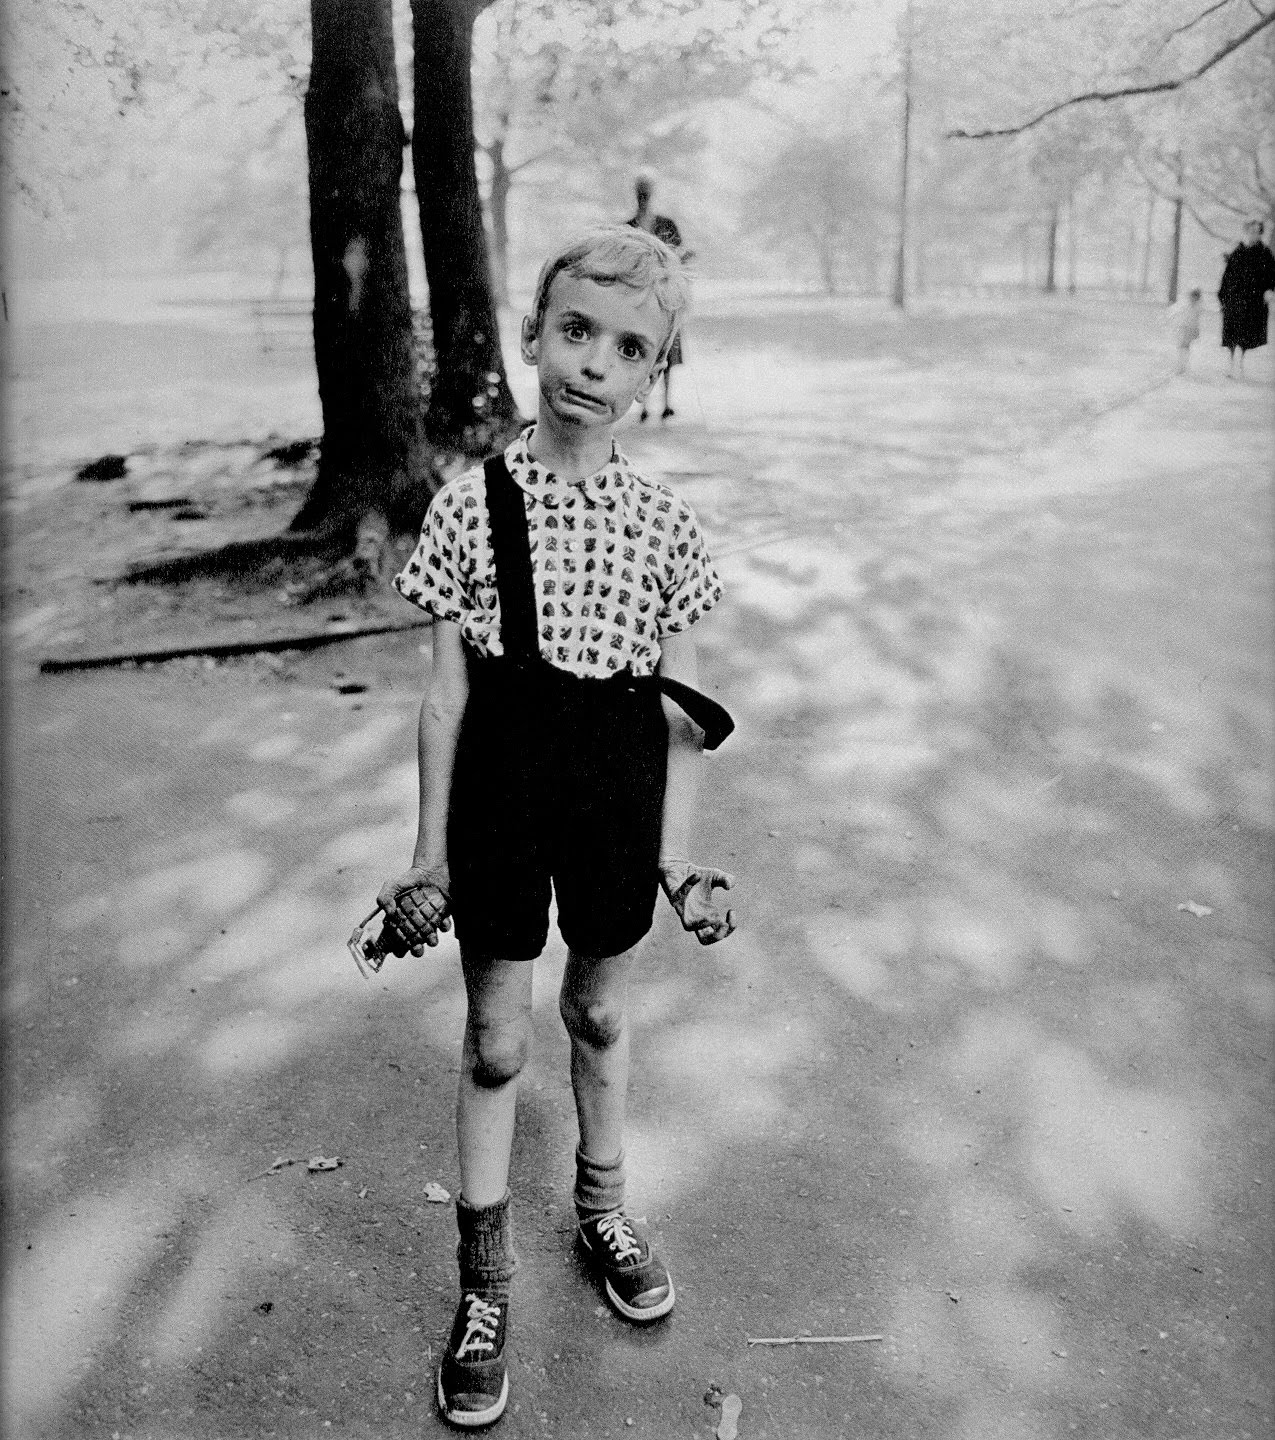 Diane ARBUS, Child With Toy Hand Grenade In Central Park, 1962.